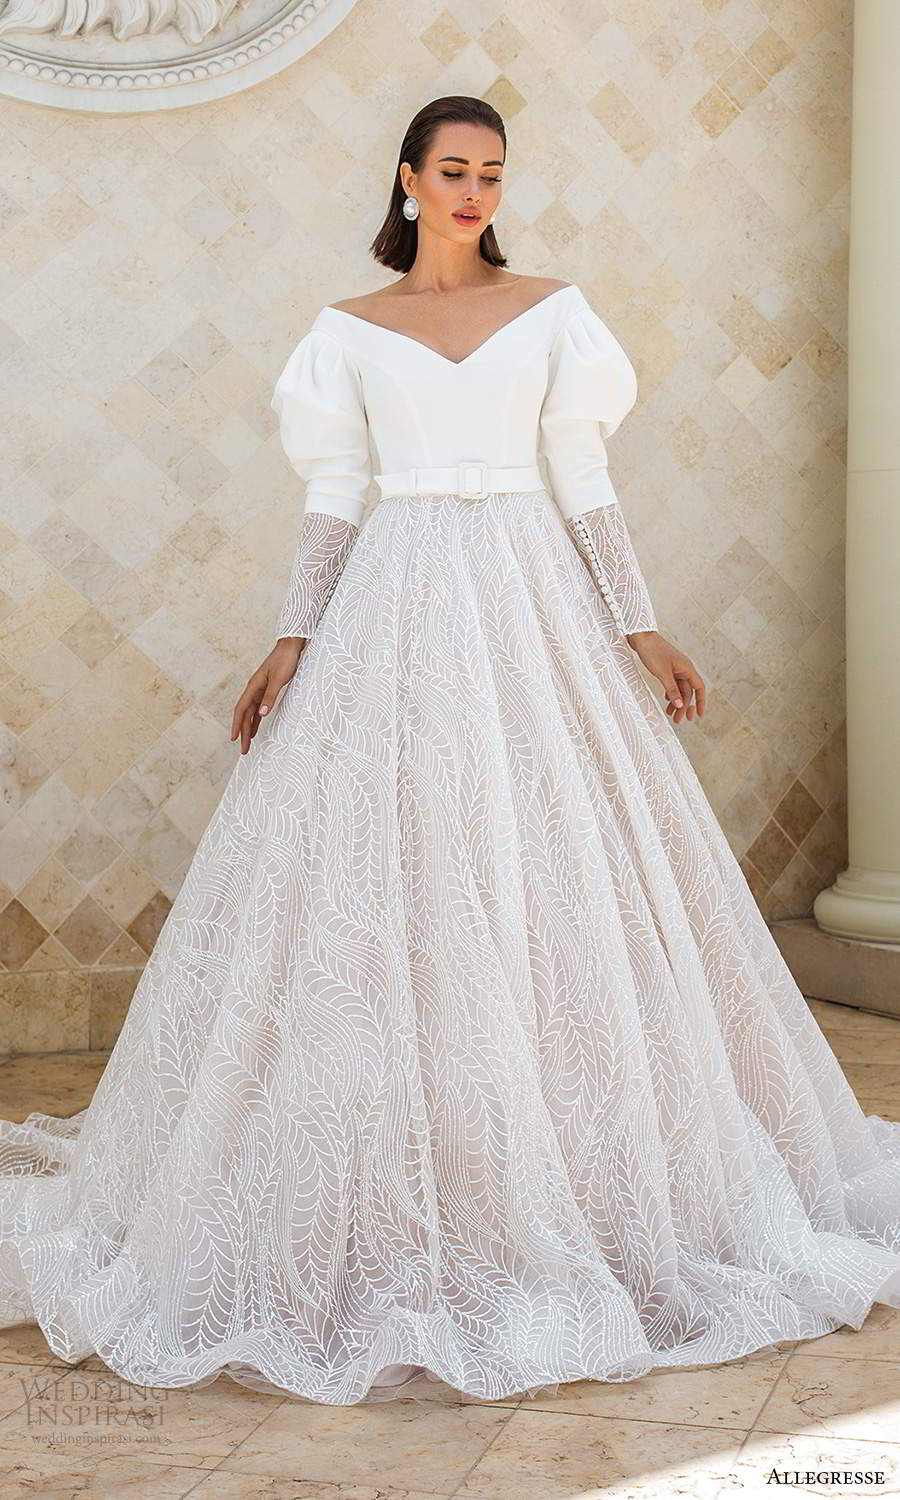 allegresse 2021 bridal long puff sleeves off shoulder v neckline clean bodice a line ball gown wedding dress chapel train (13) mv